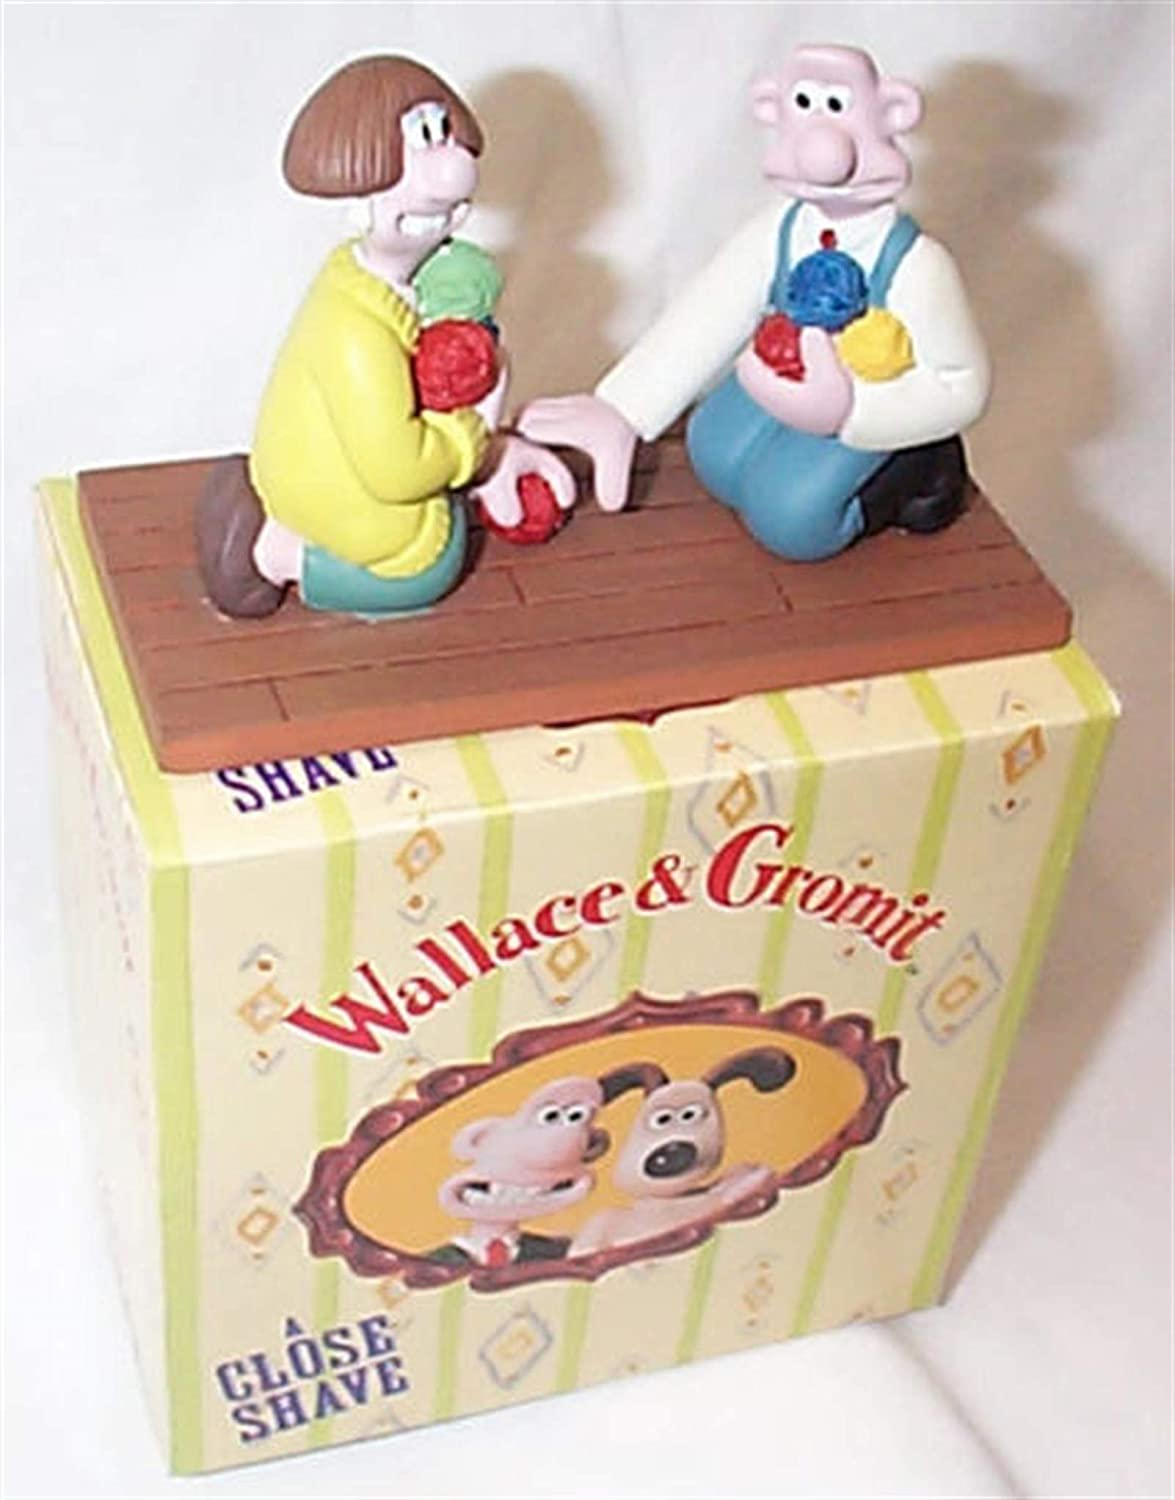 Vivid Imaginations Wallace and Wendolene Statue from A Close Shave hand painted model